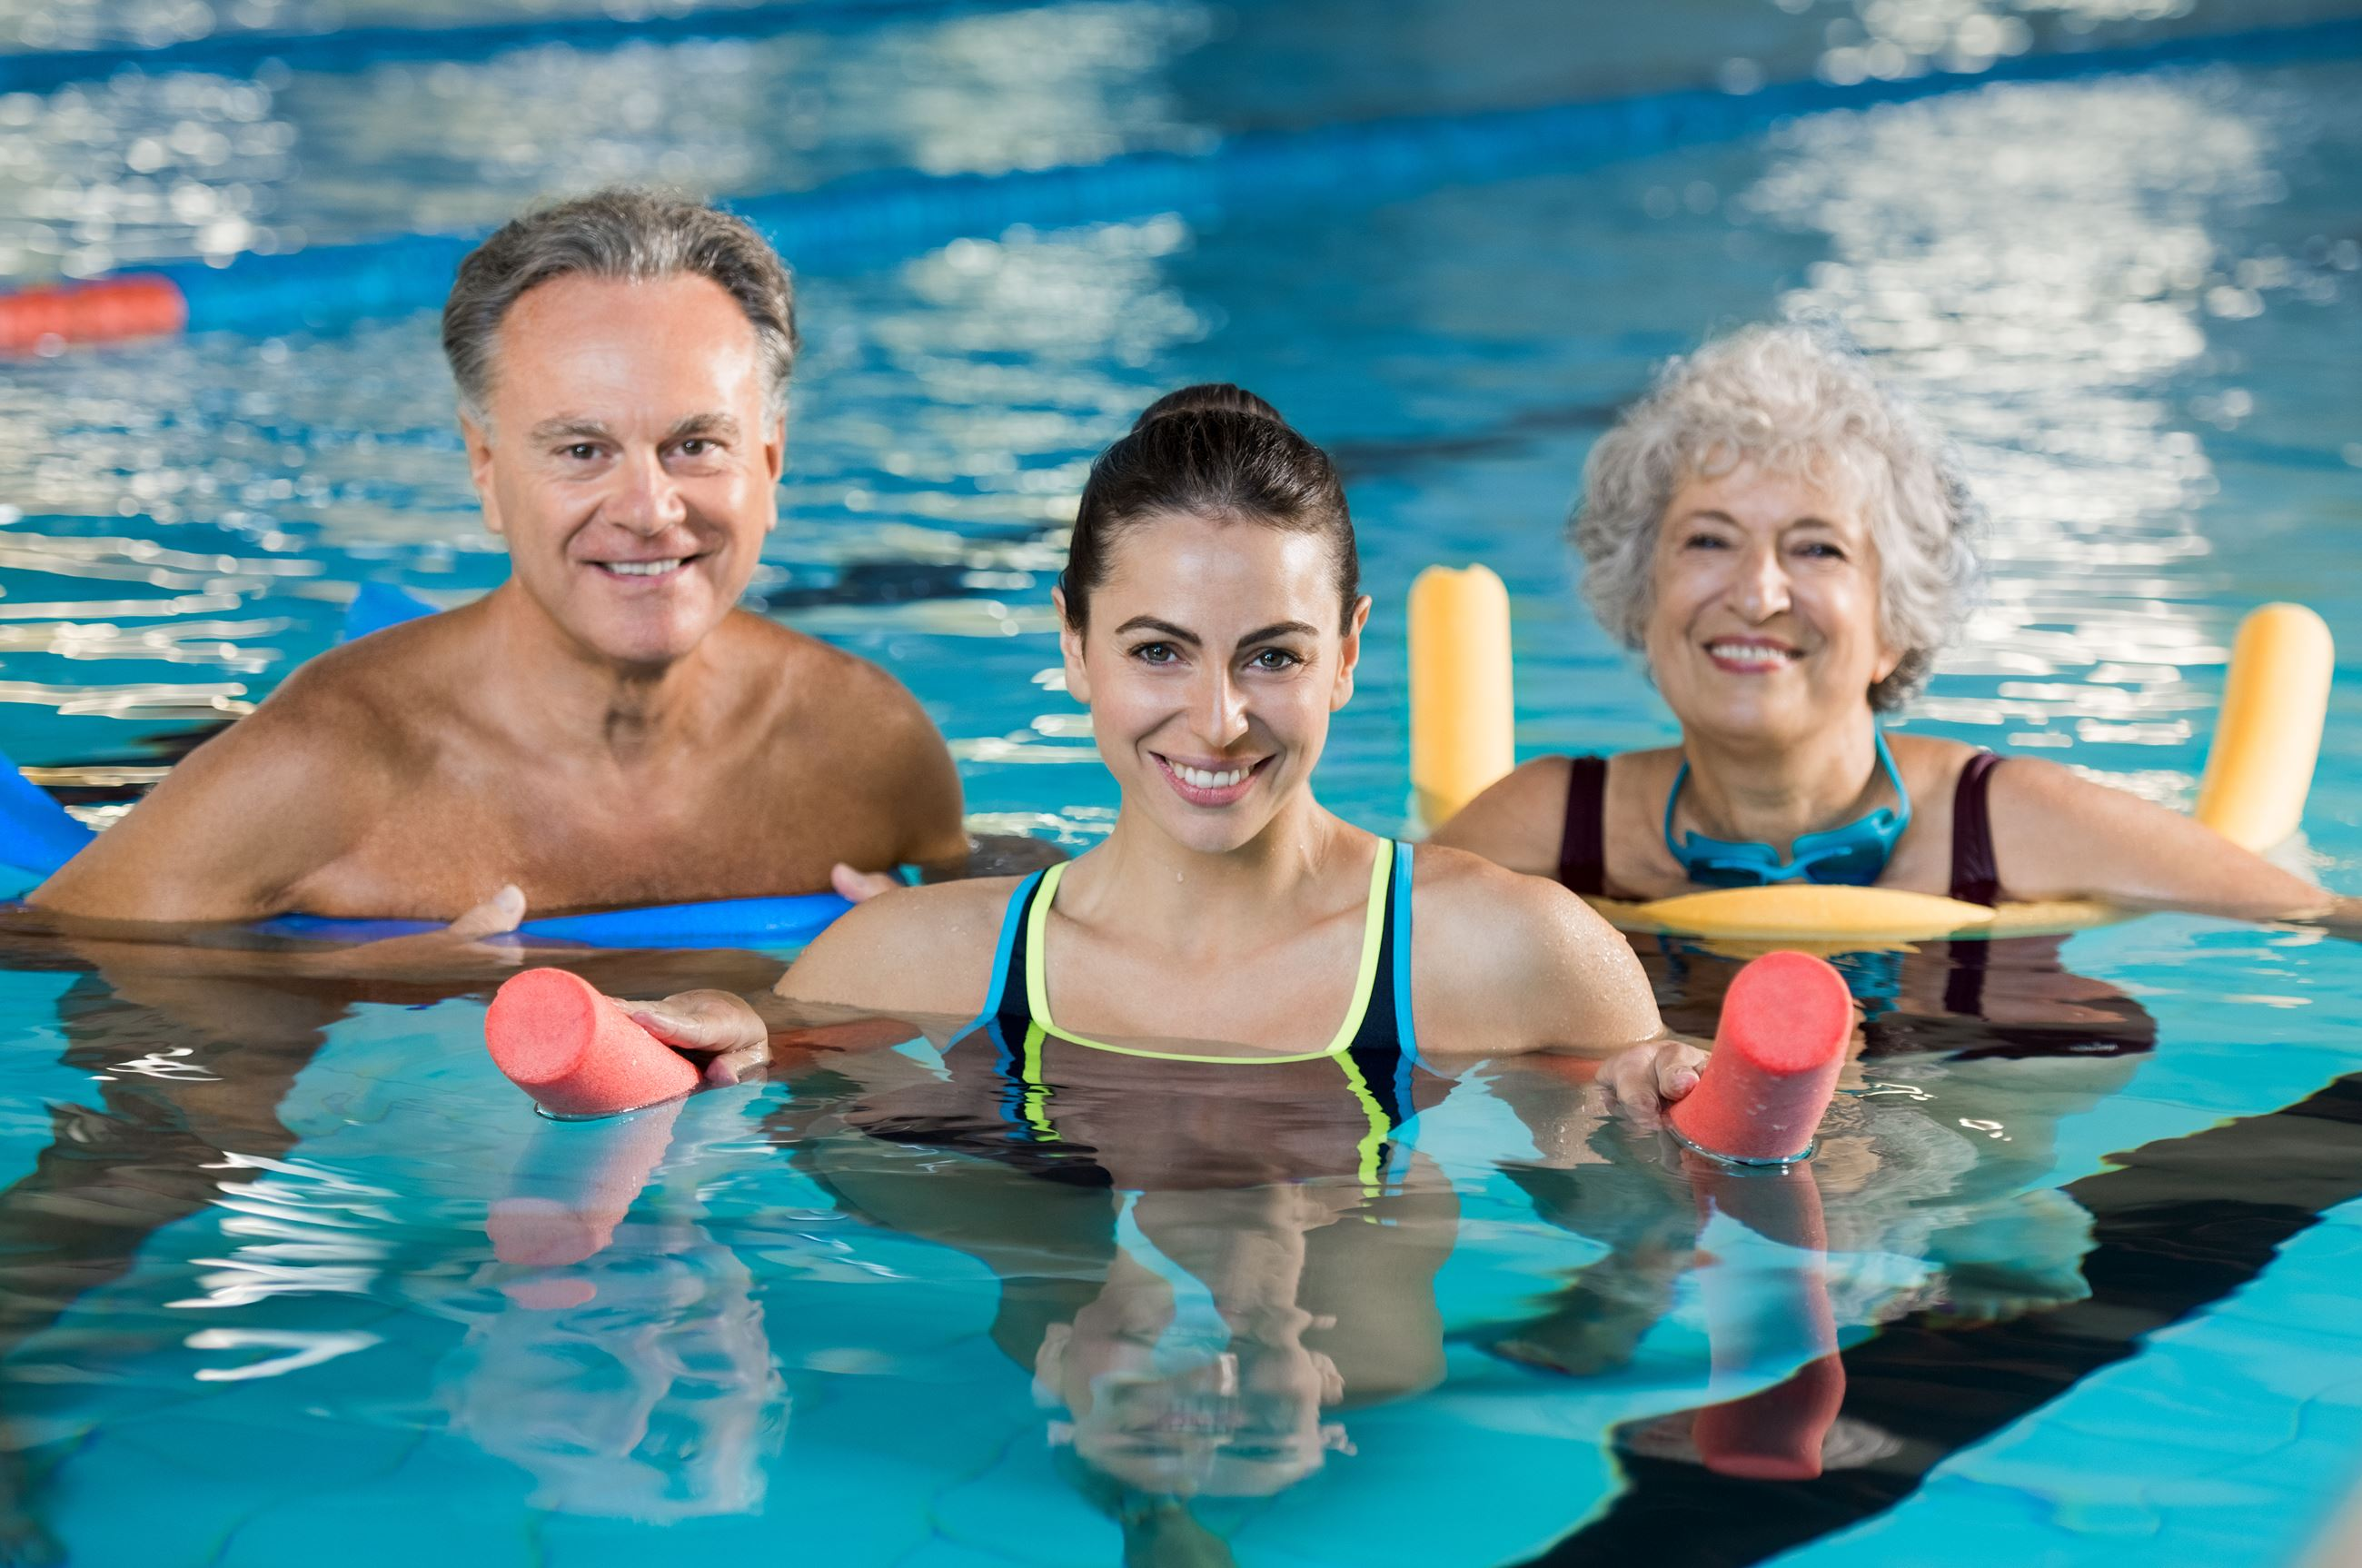 Group of seniors and adult in water doing water aerobics